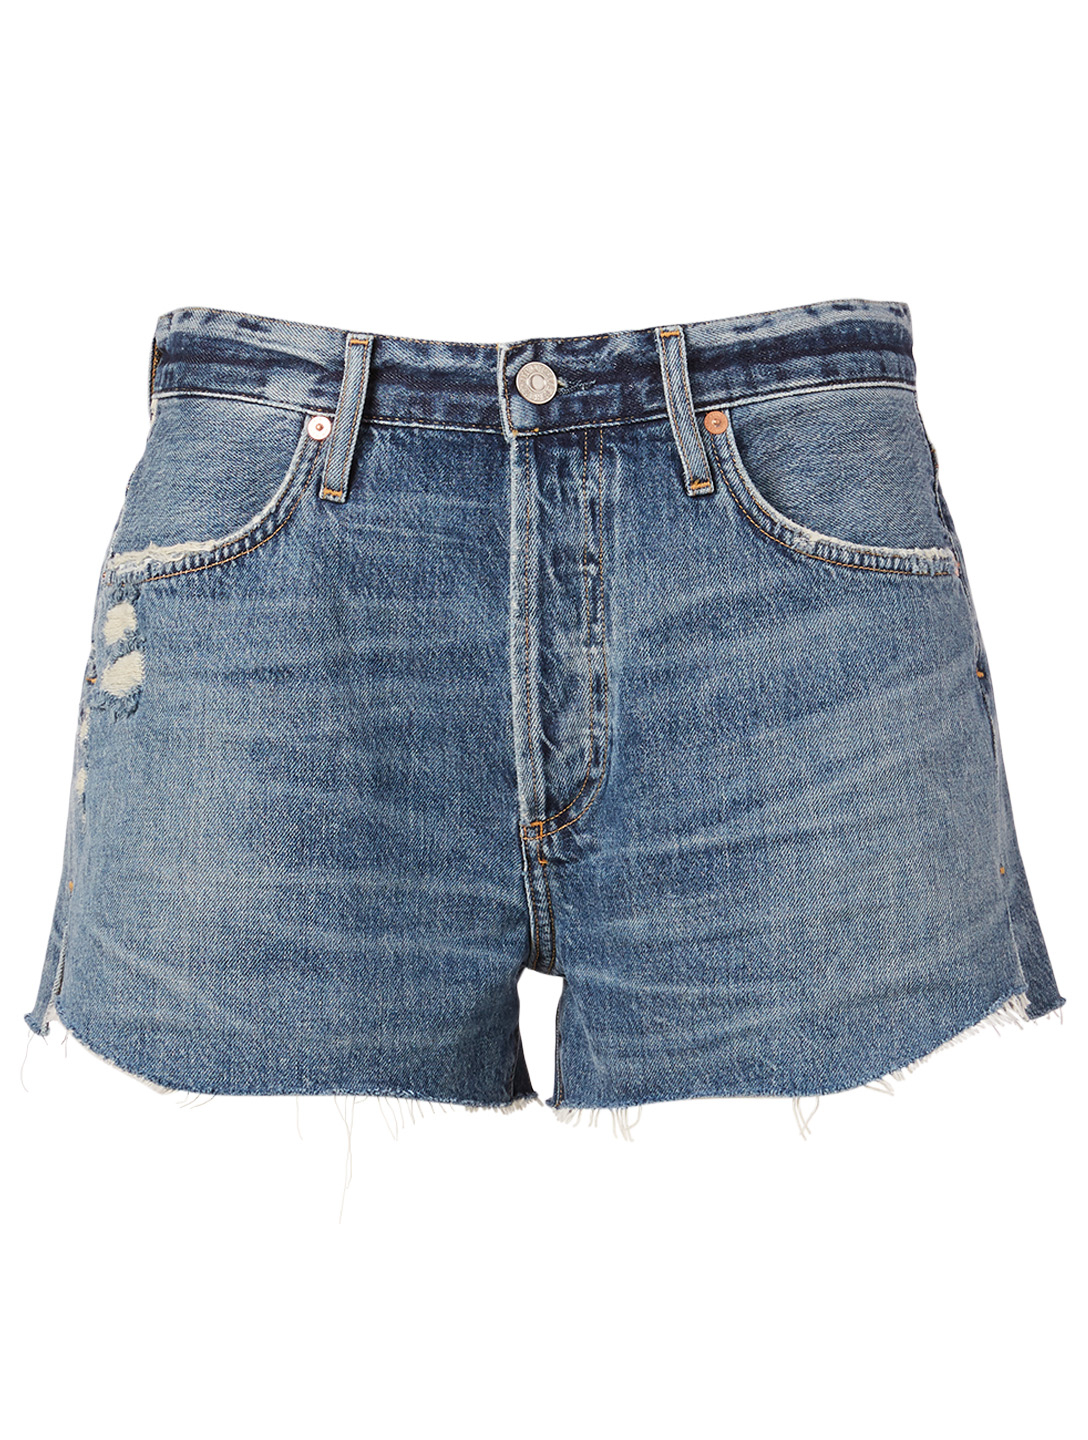 CITIZENS OF HUMANITY Annabelle Organic Cotton Denim Shorts Women's Blue